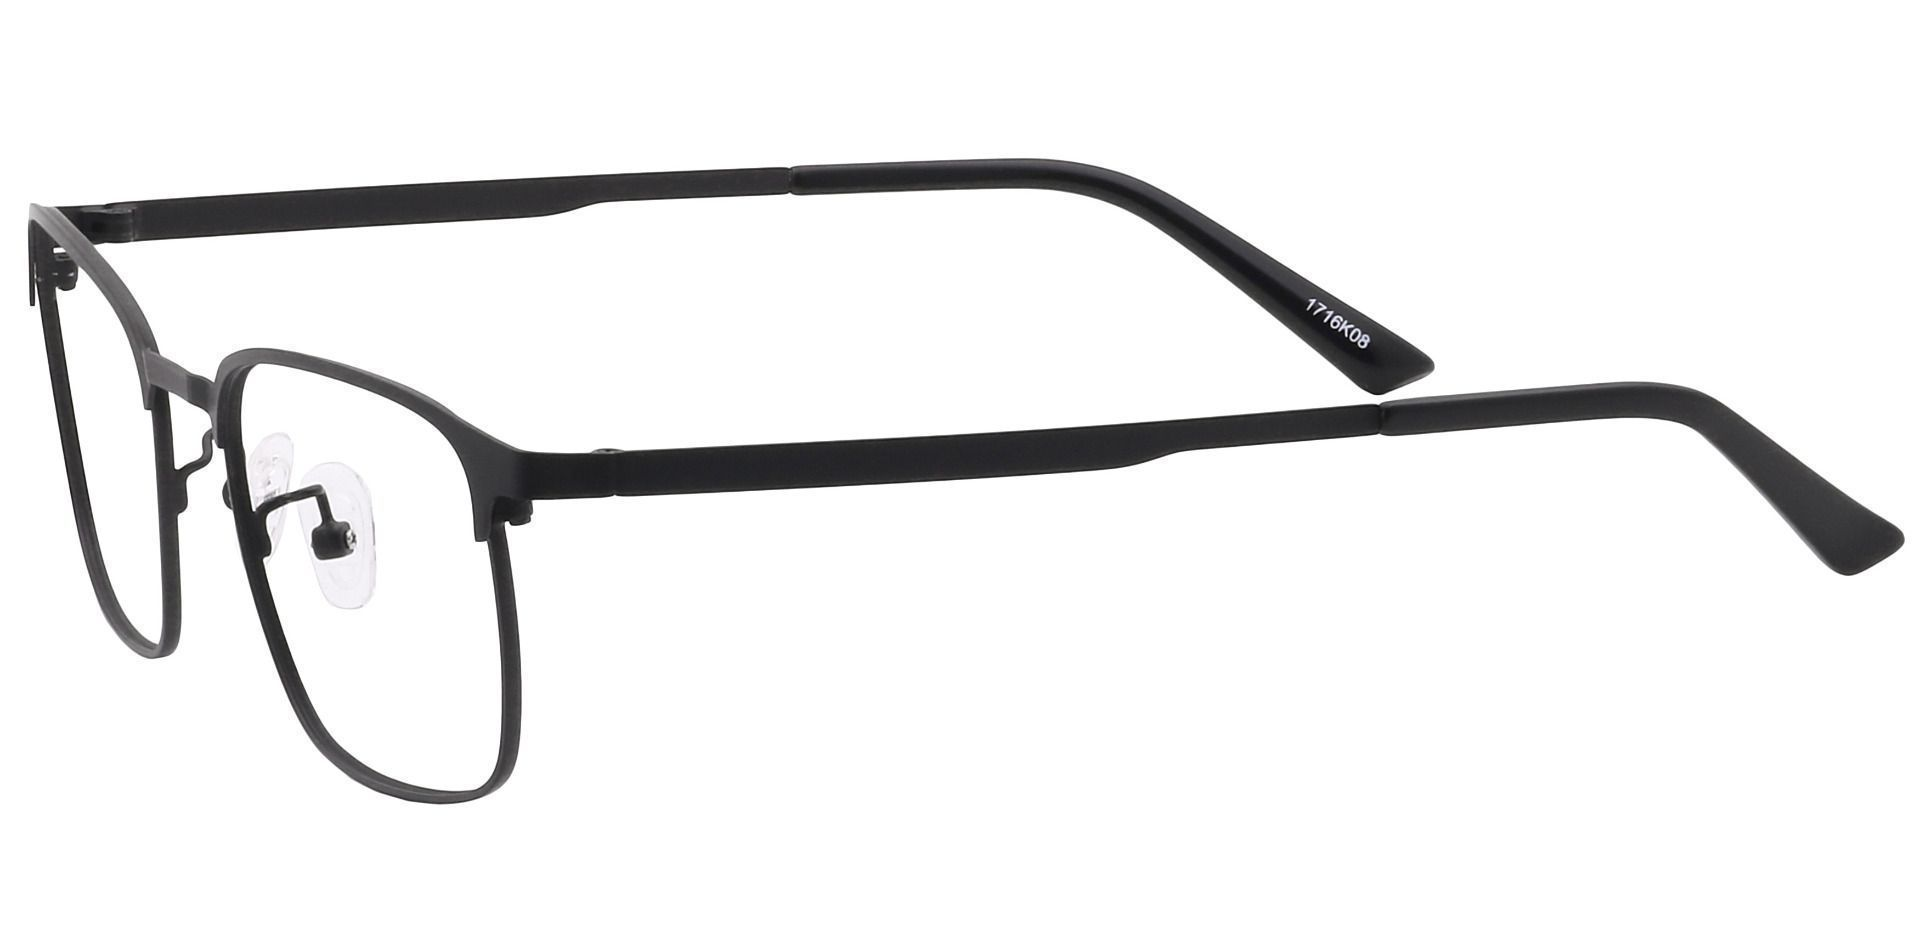 Kingston Square Reading Glasses - Black